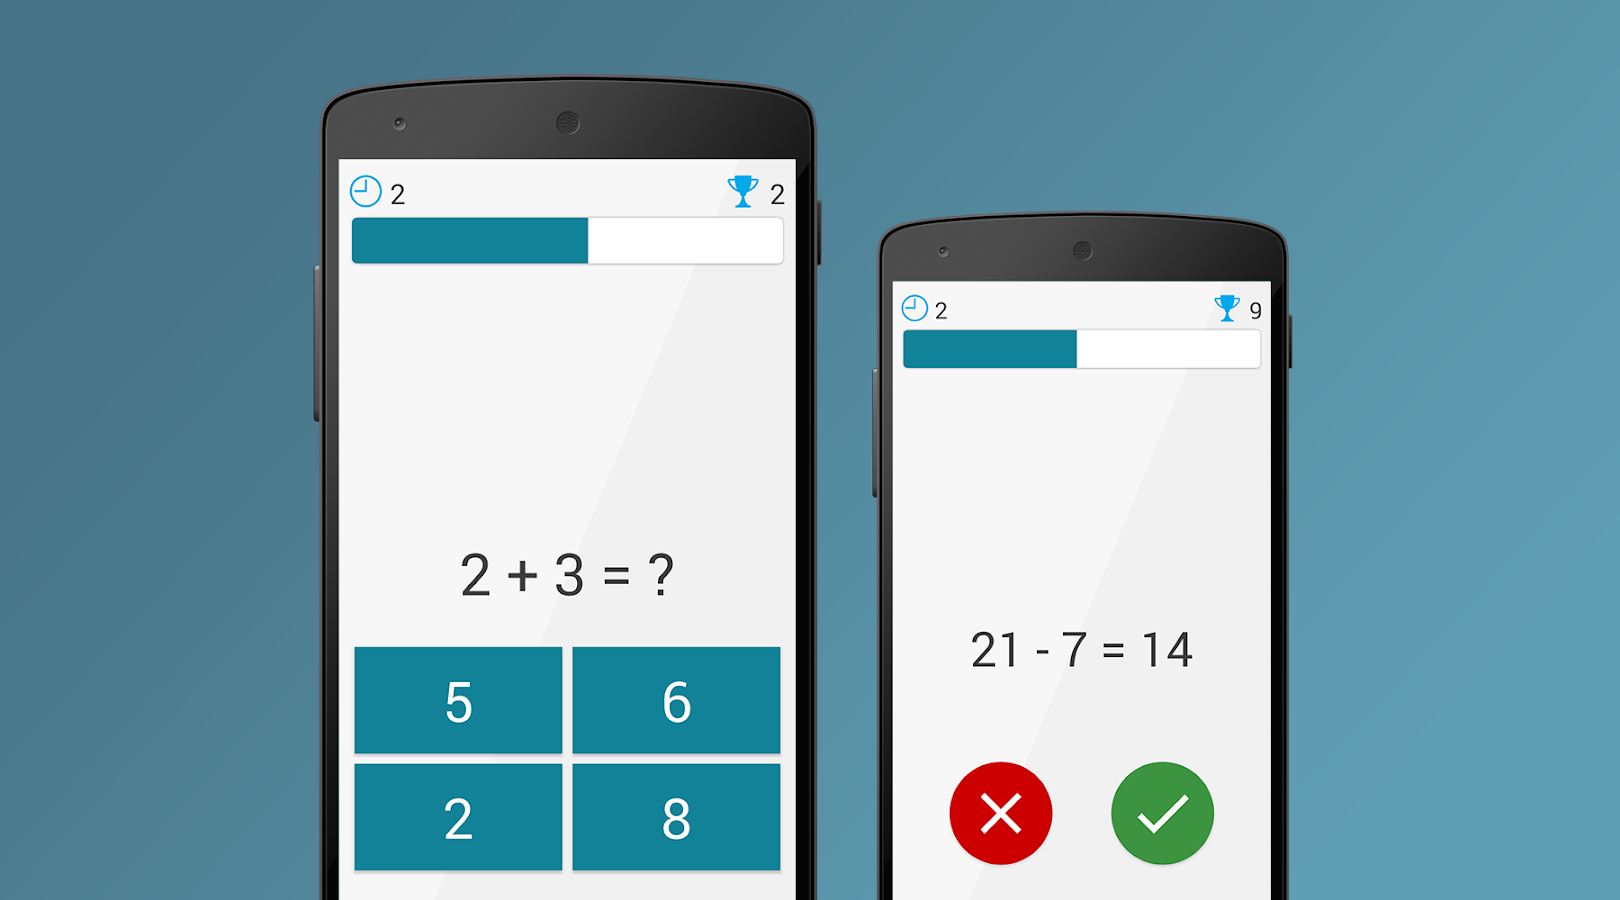 Quick Brain Mathematics - Exercises for the brain 2.2.1 APK Download ...